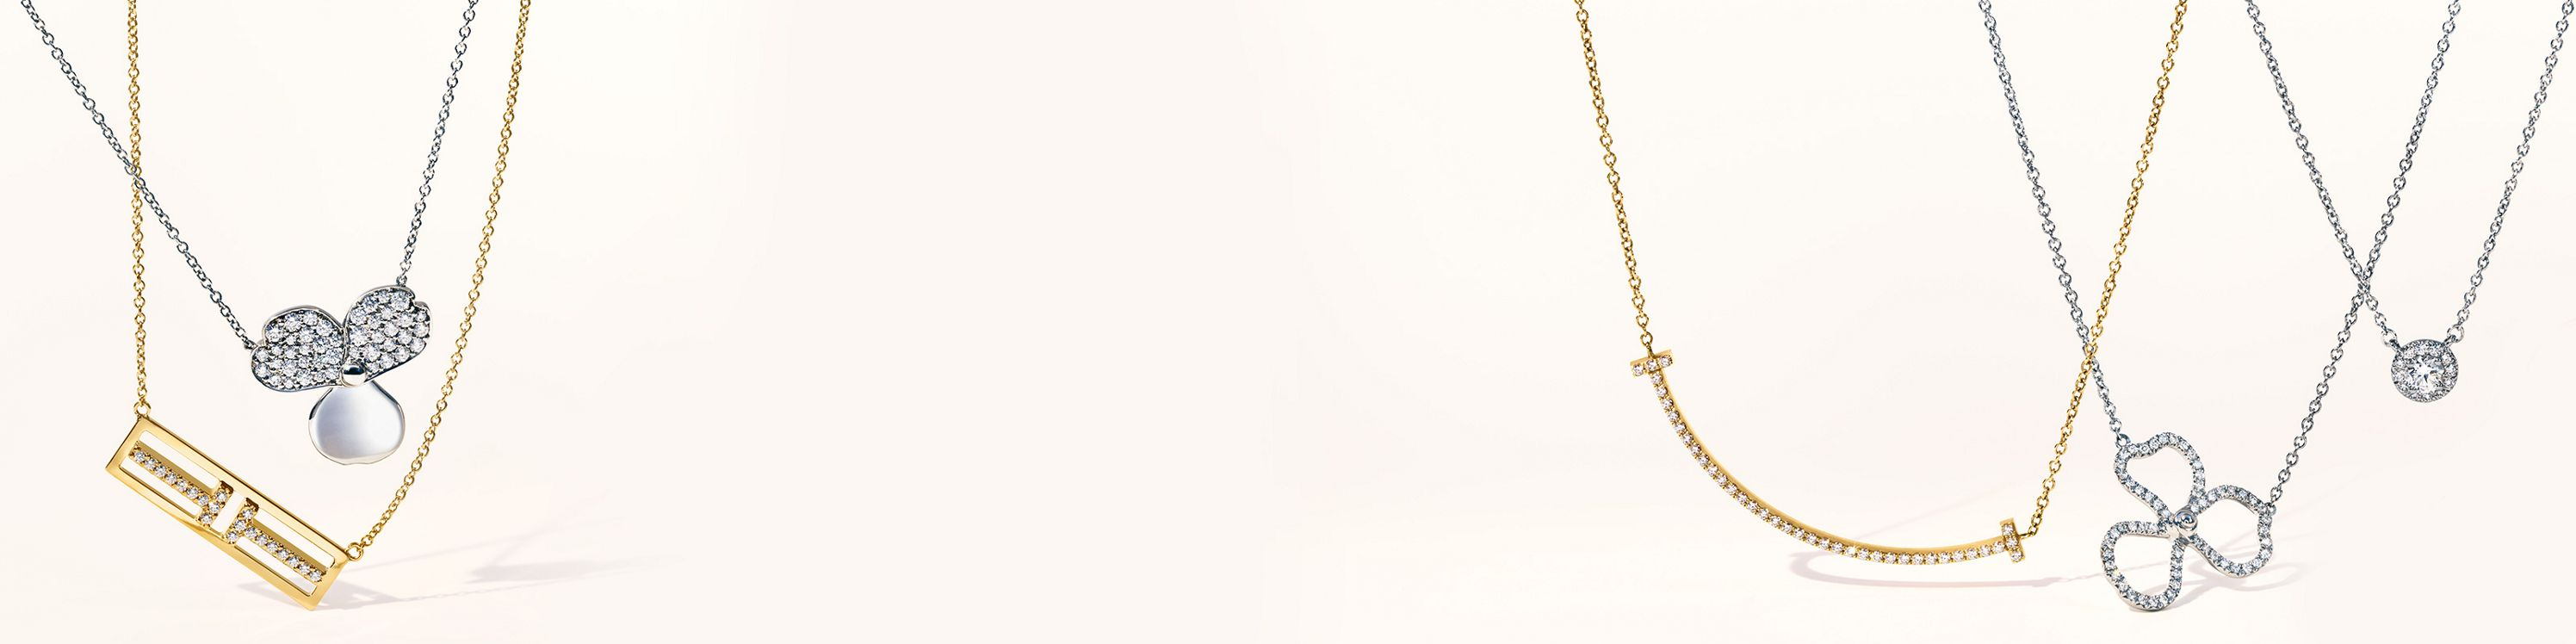 0aeb9dfeb Necklaces & Pendants | Tiffany & Co.